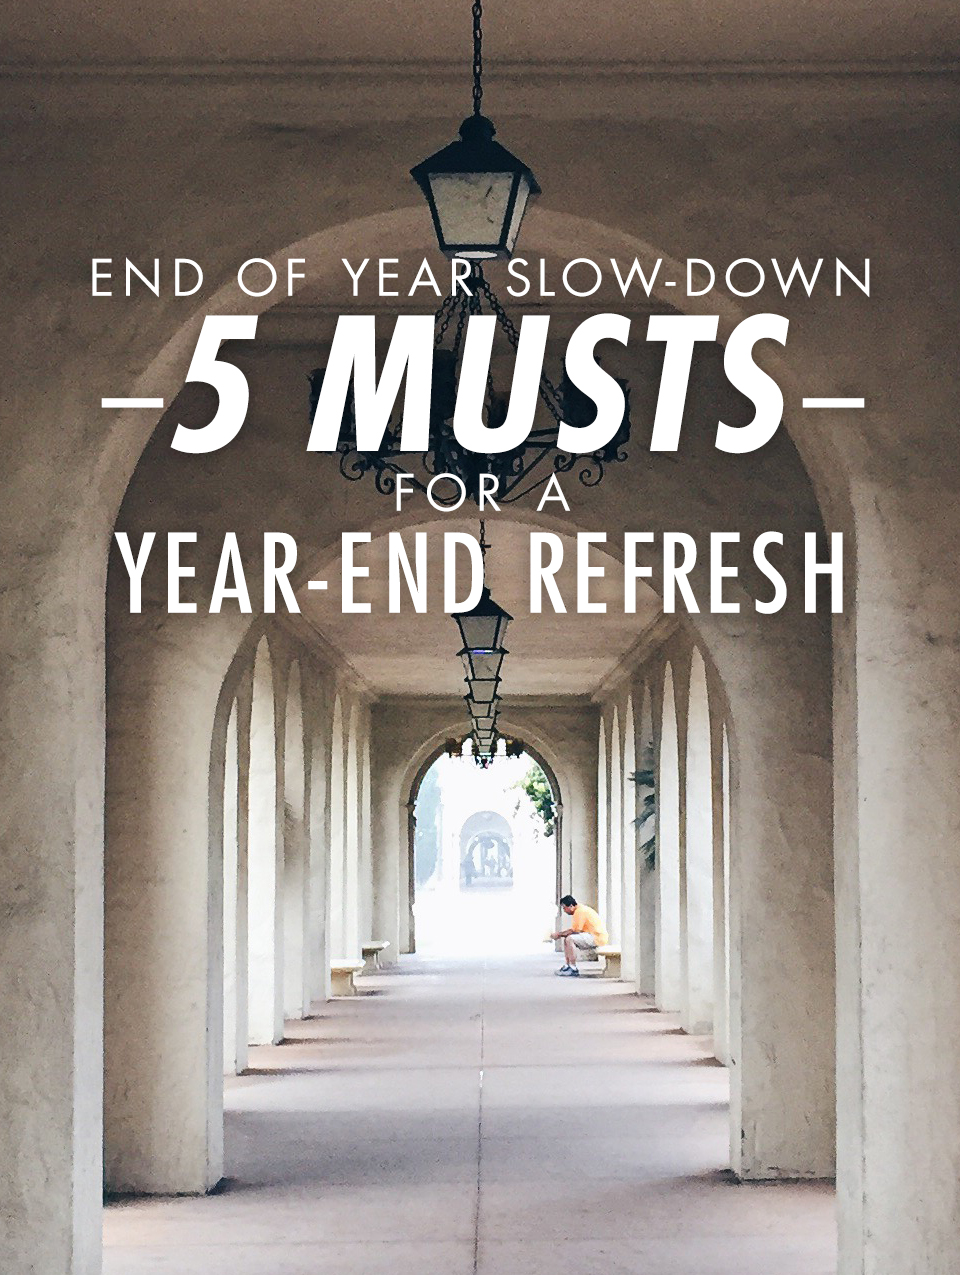 End of Year Slow-Down—5 Musts for a Year-End Refresh // It's Me, Lizzy B - Musings on Life, Business, & The Pursuit of Curiosity // Personal blog of Lizelly Meza